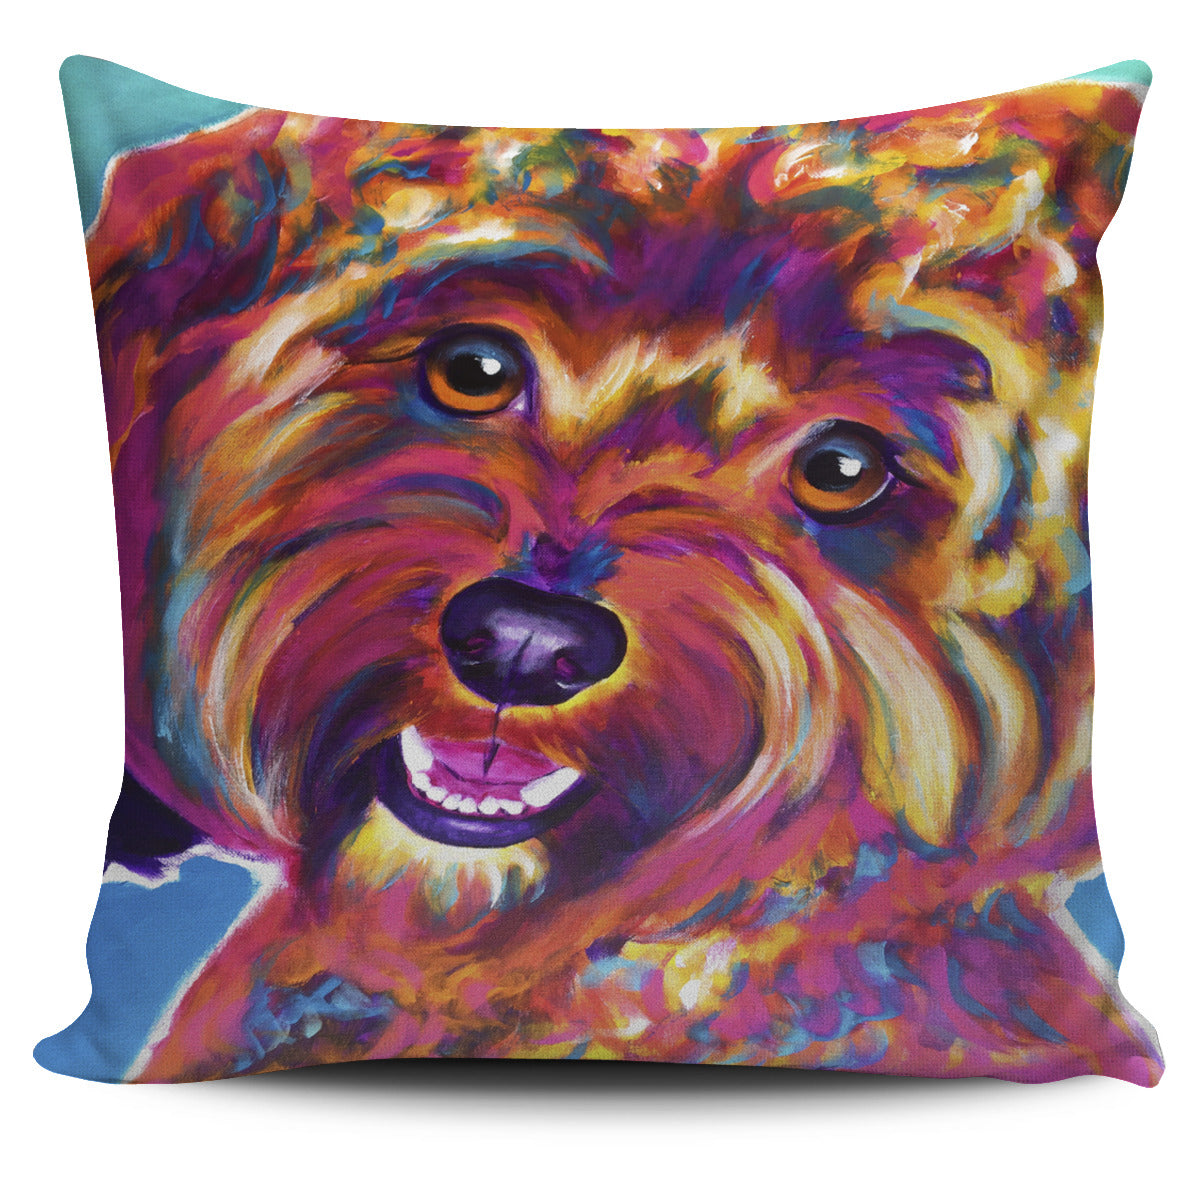 Cavapoo Dog Pillow Cover